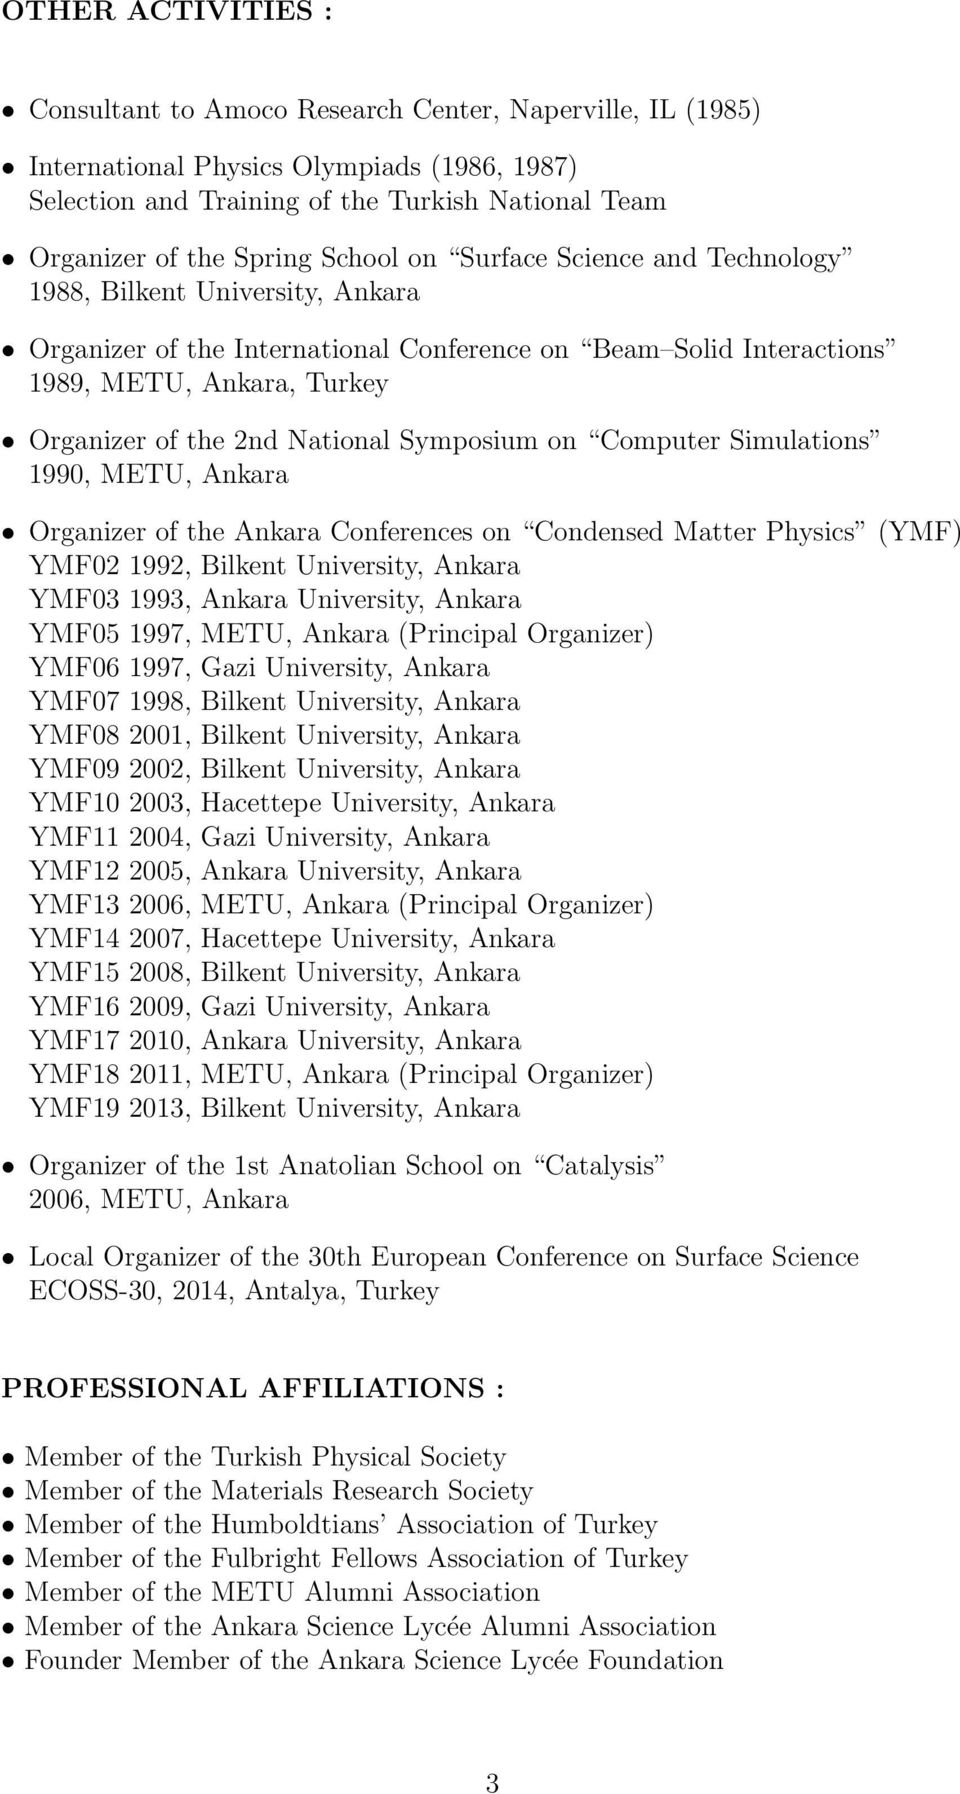 Symposium on Computer Simulations 1990, METU, Ankara Organizer of the Ankara Conferences on Condensed Matter Physics (YMF) YMF02 1992, Bilkent University, Ankara YMF03 1993, Ankara University, Ankara